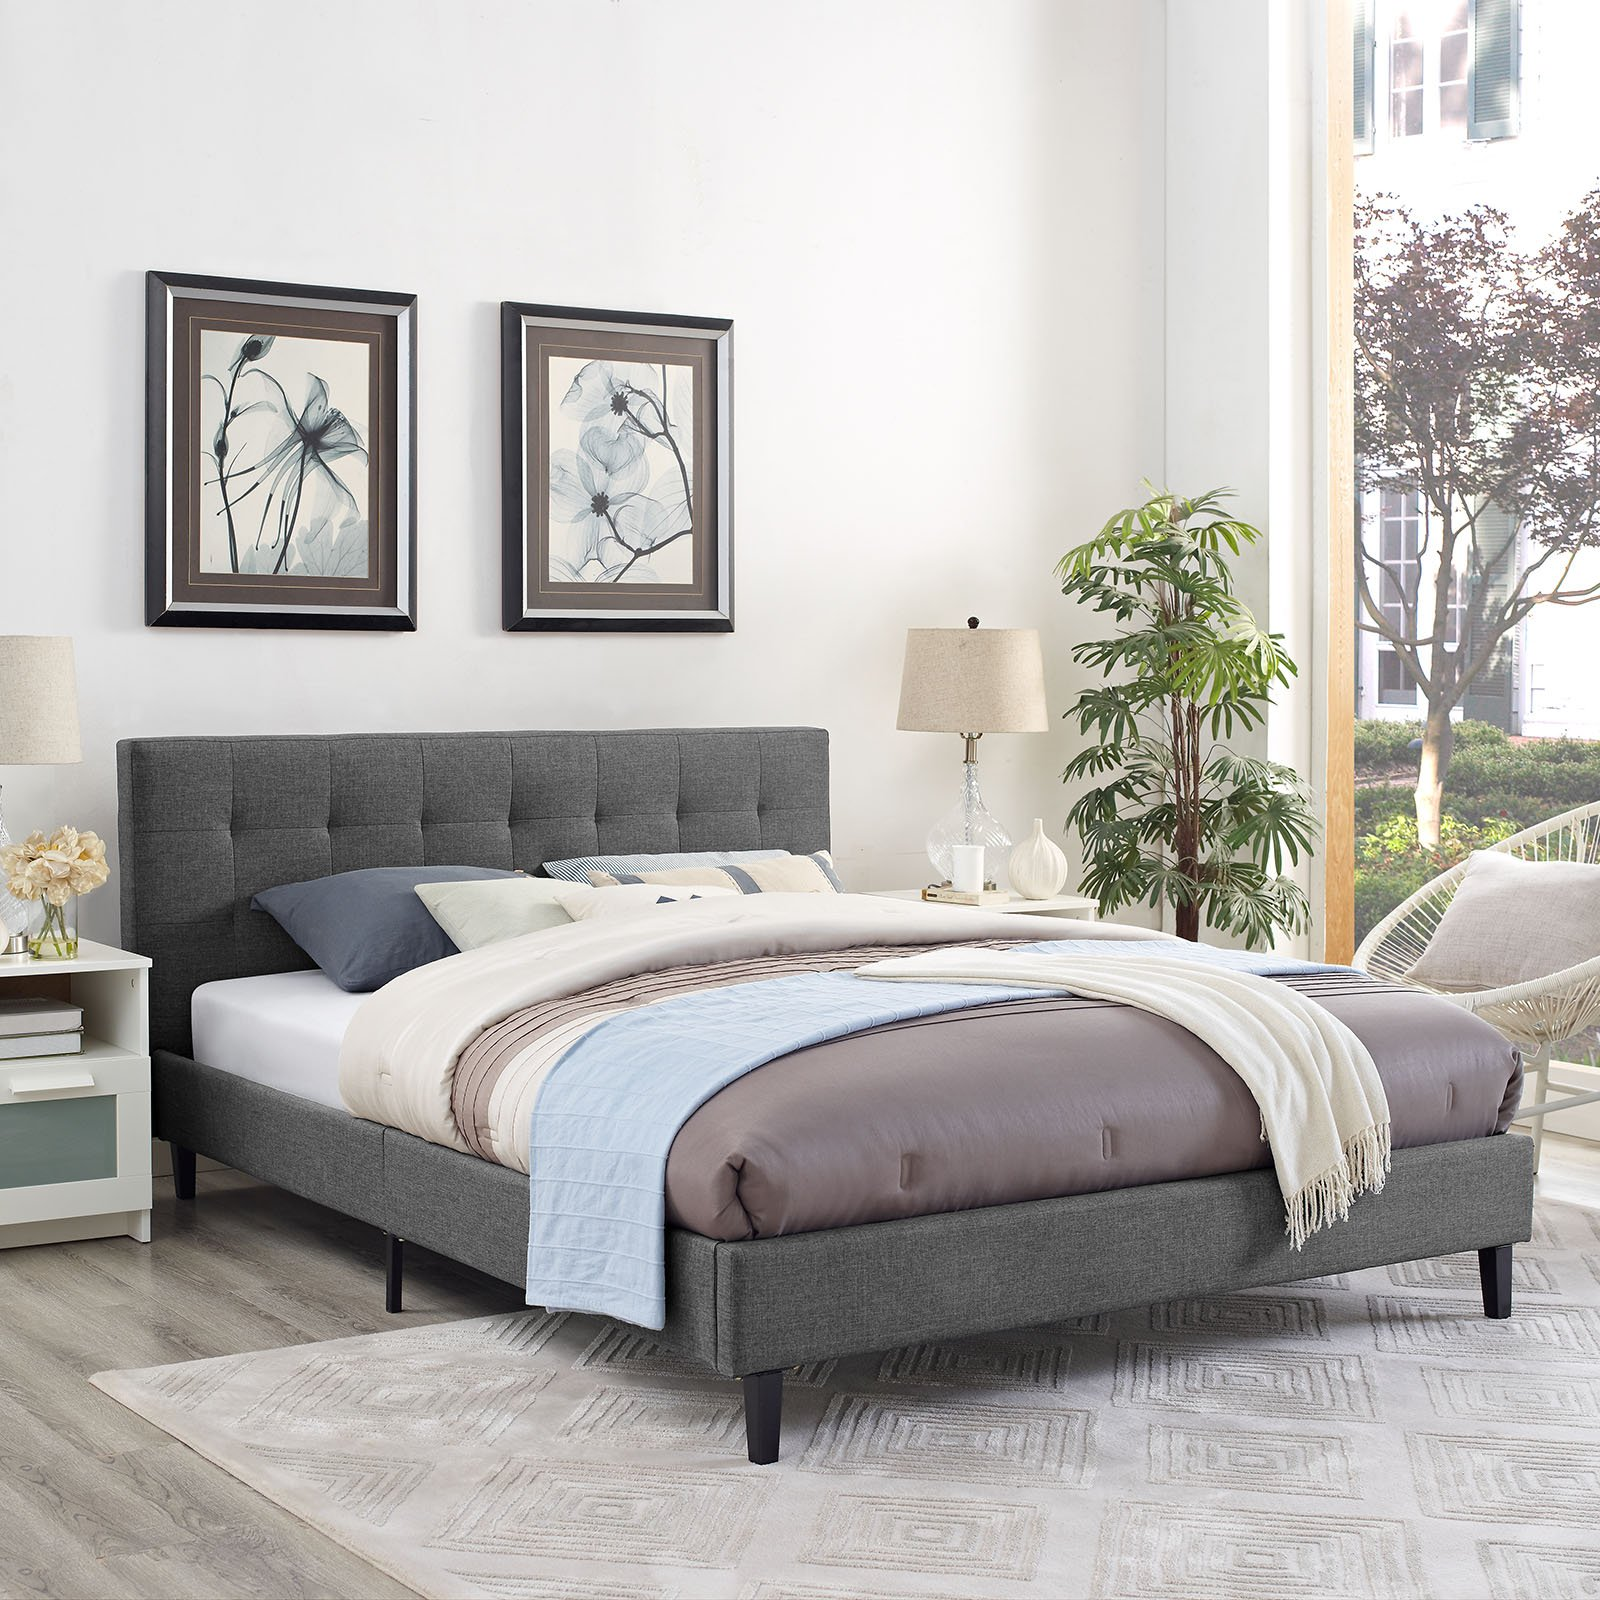 Modway Linnea Fabric Bed, Queen, Gray by Modway